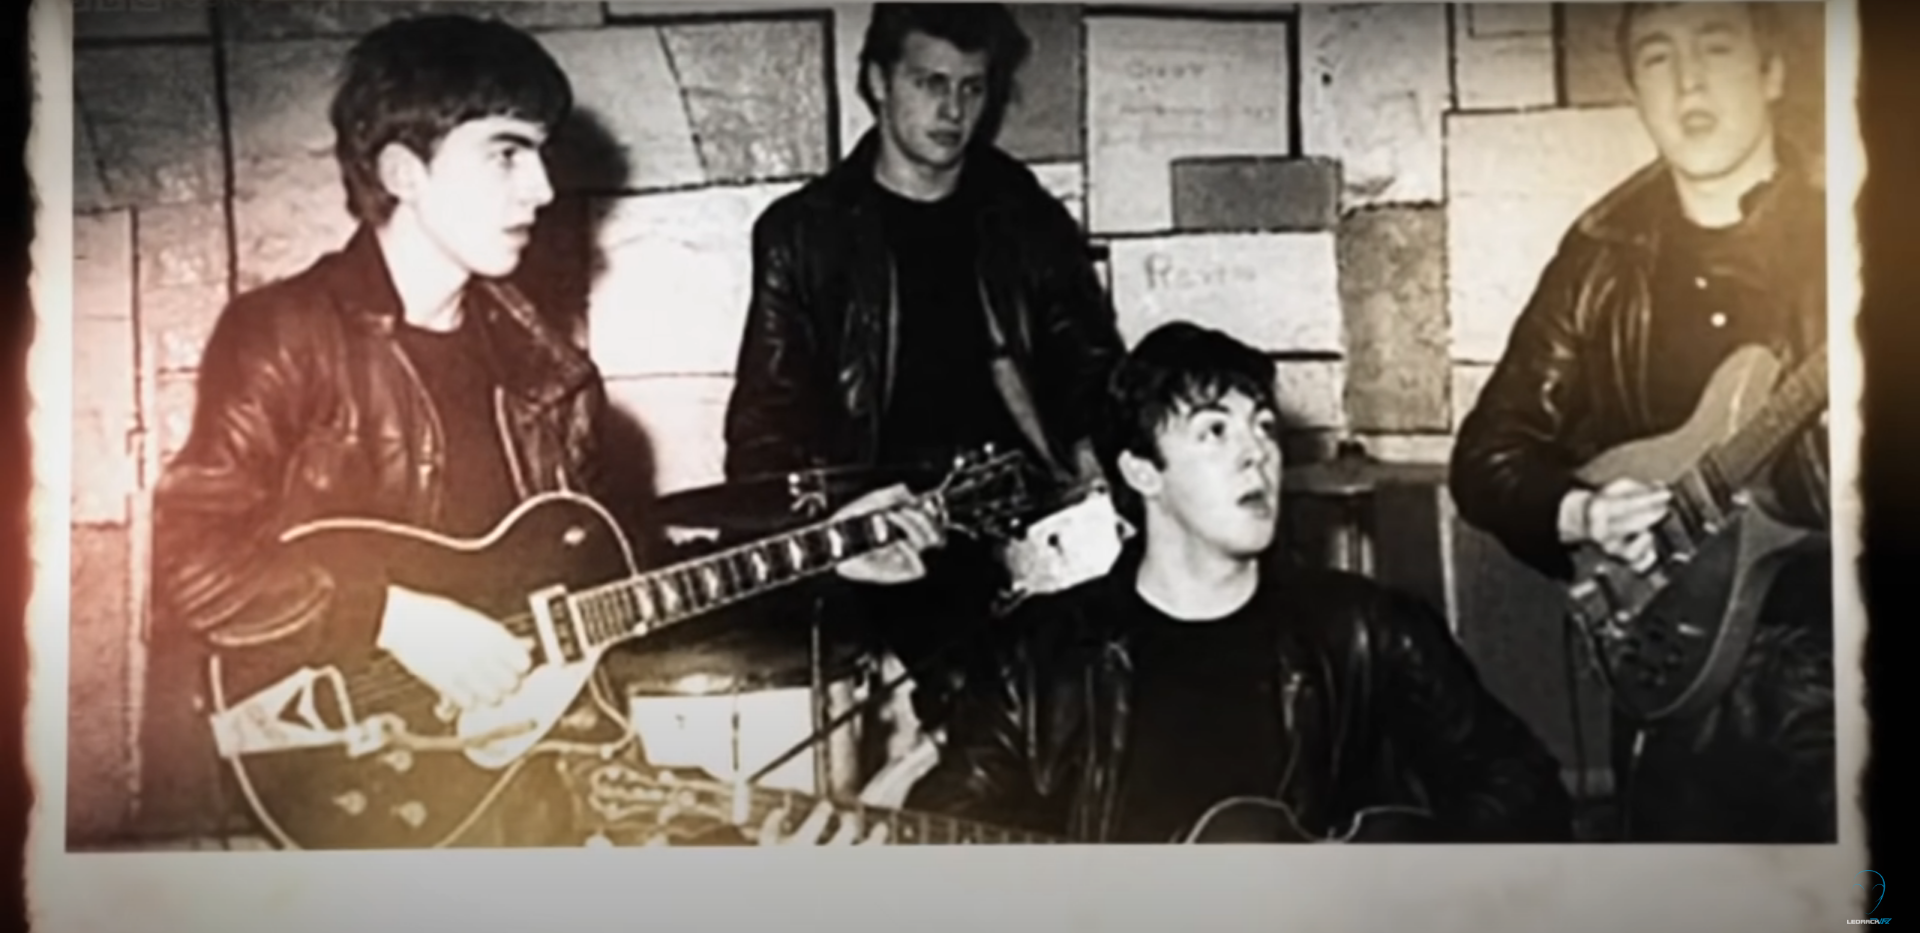 Image shows a classic photograph of The Beatles performing in black leather jackets.